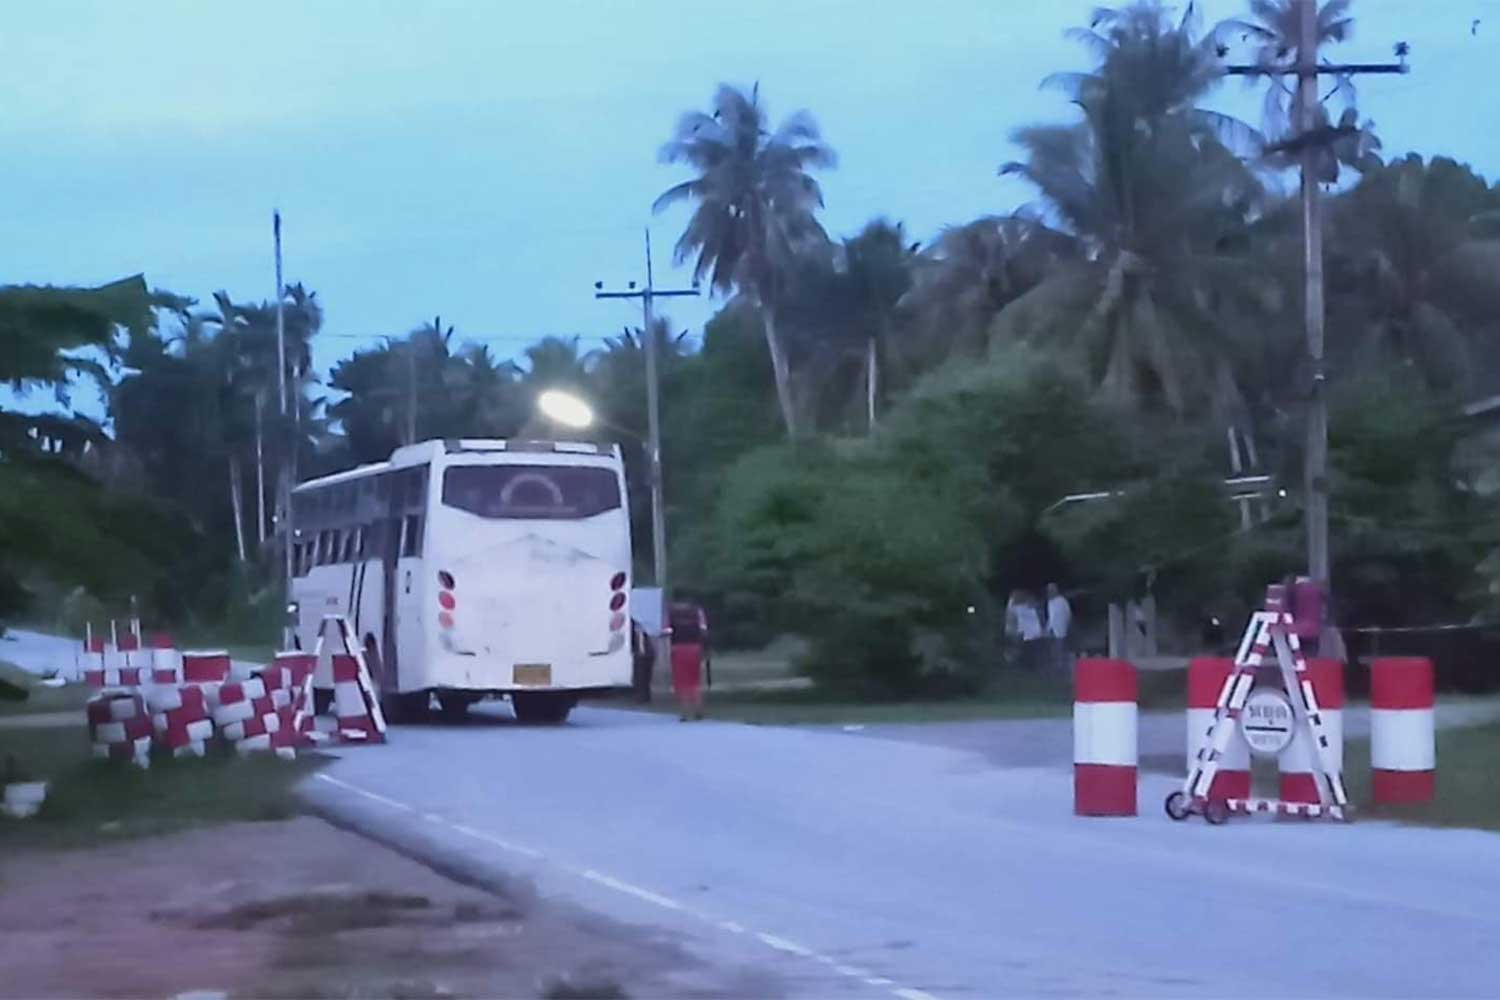 The school bus operated by a private Islamic school, parked at a military checkpoint in Yaring district, Pattani, after being hit by three shots fired by a ranger on Thursday evening. Nobody was injured. (Photo: Abdullah Benjakat)